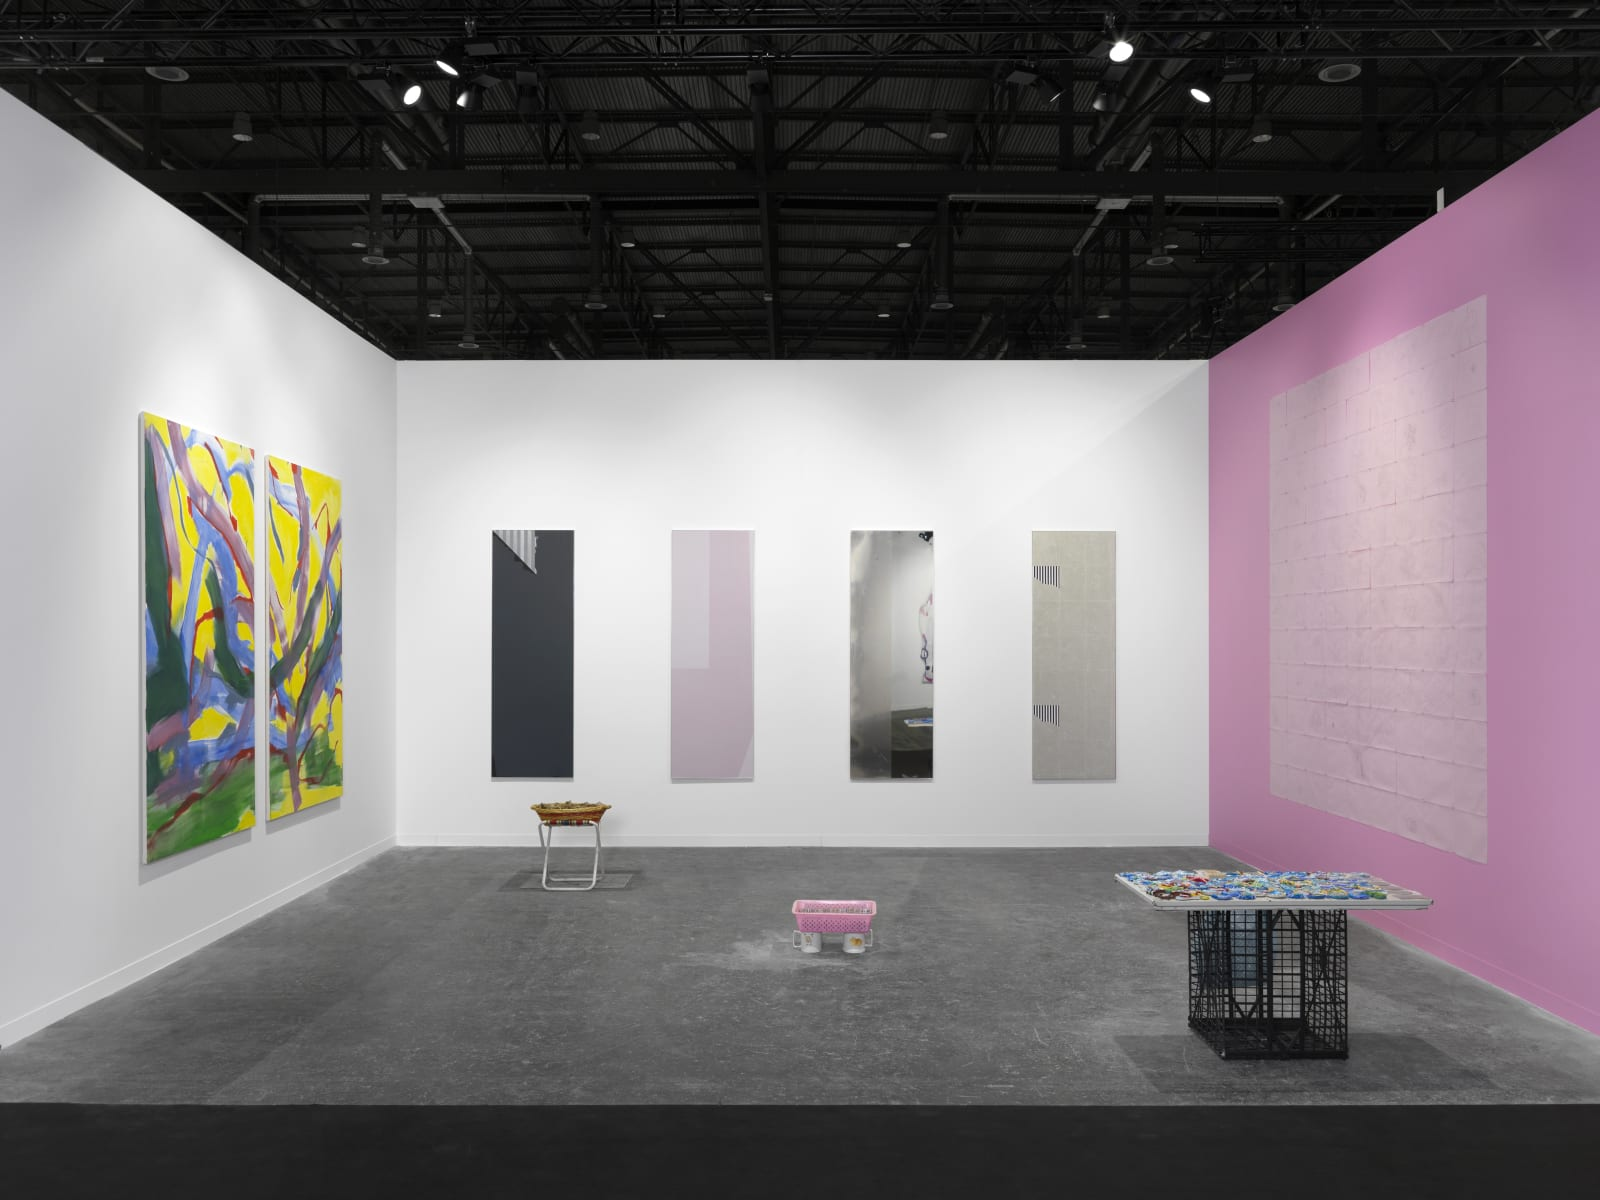 Booth Installation View #2